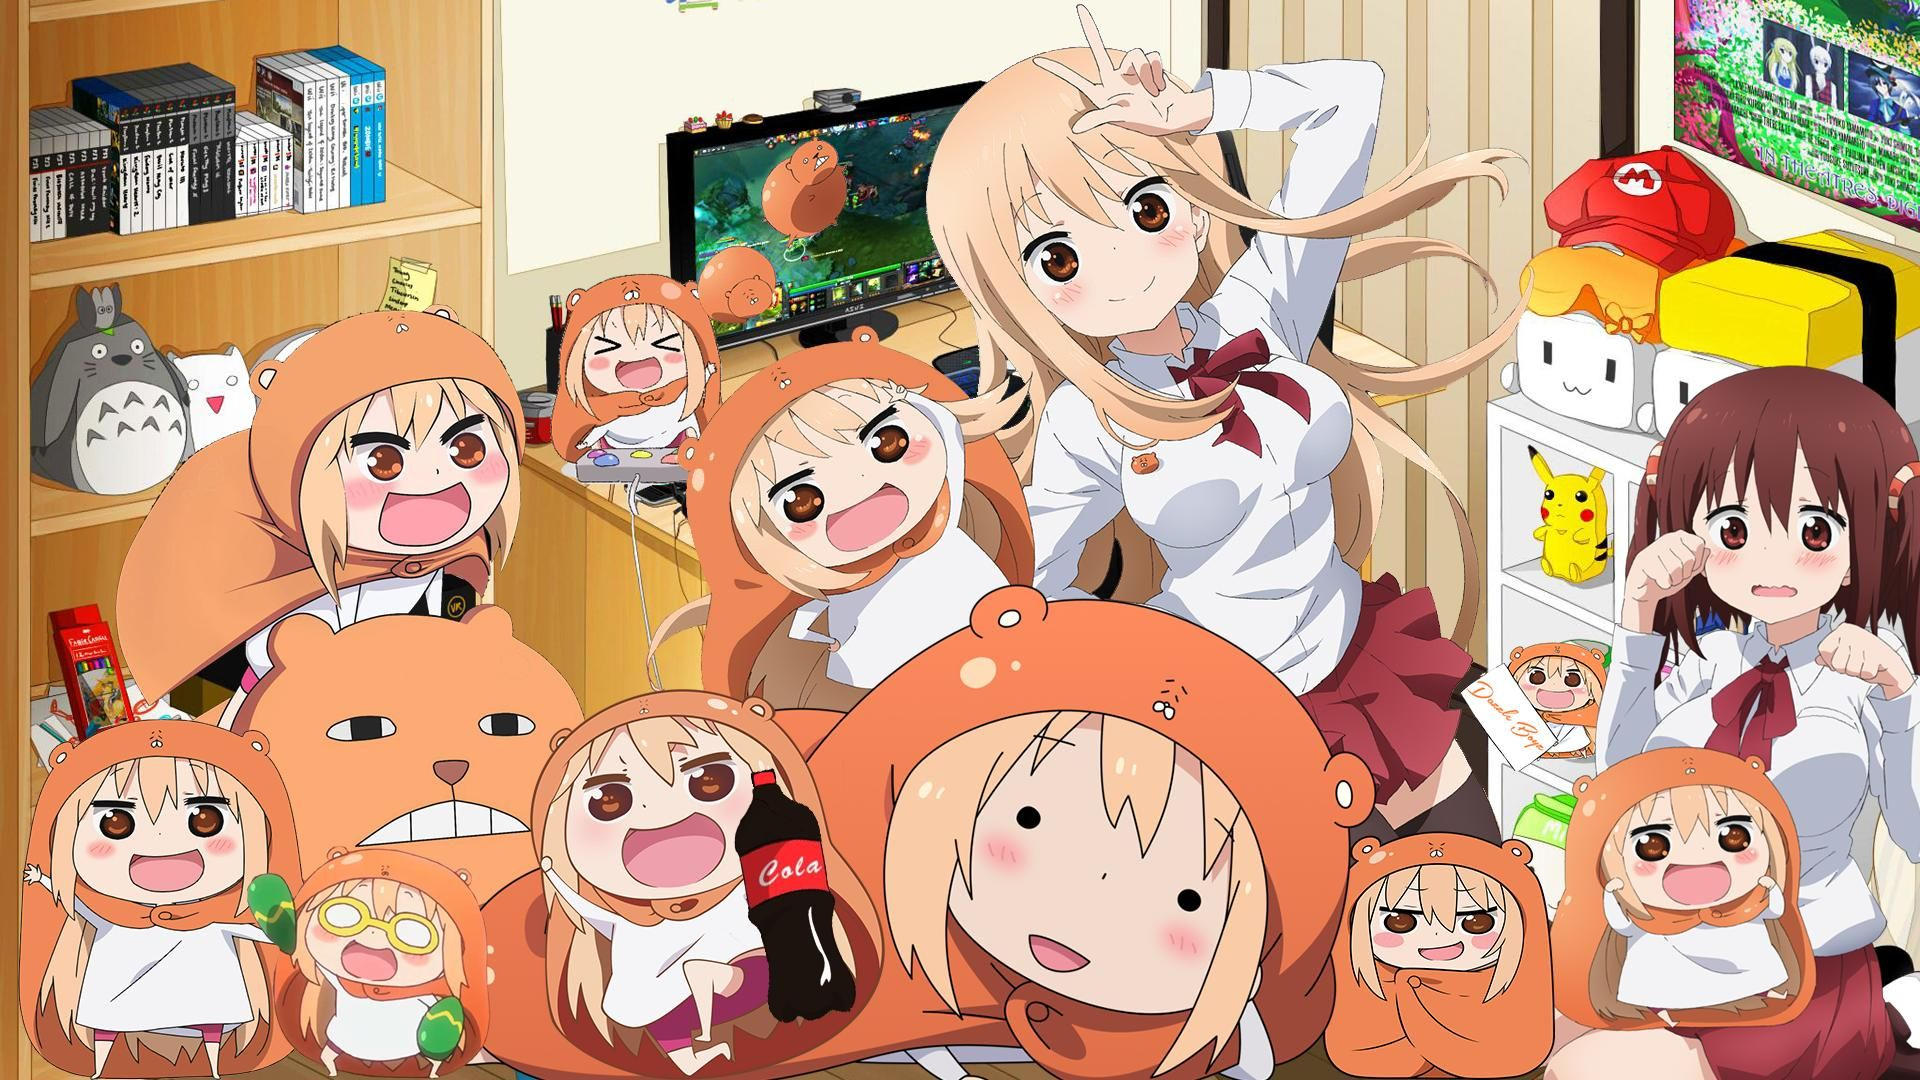 Umaru Chan Wallpaper Checkout More News On Www Plexushub Co Uk